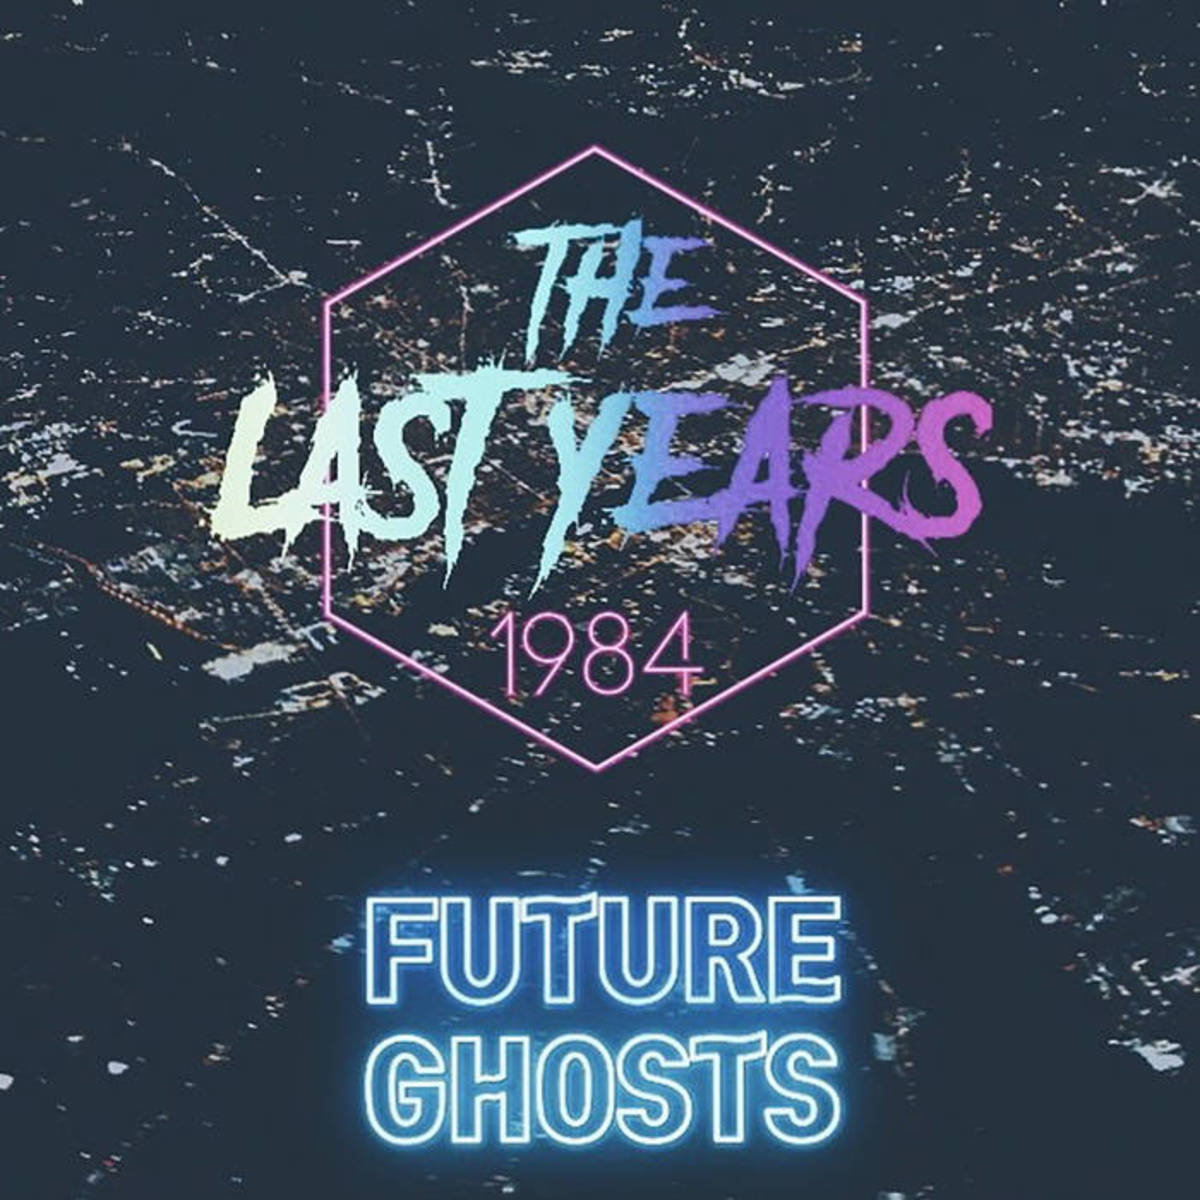 synthpop-ep-review-future-ghosts-by-the-last-years